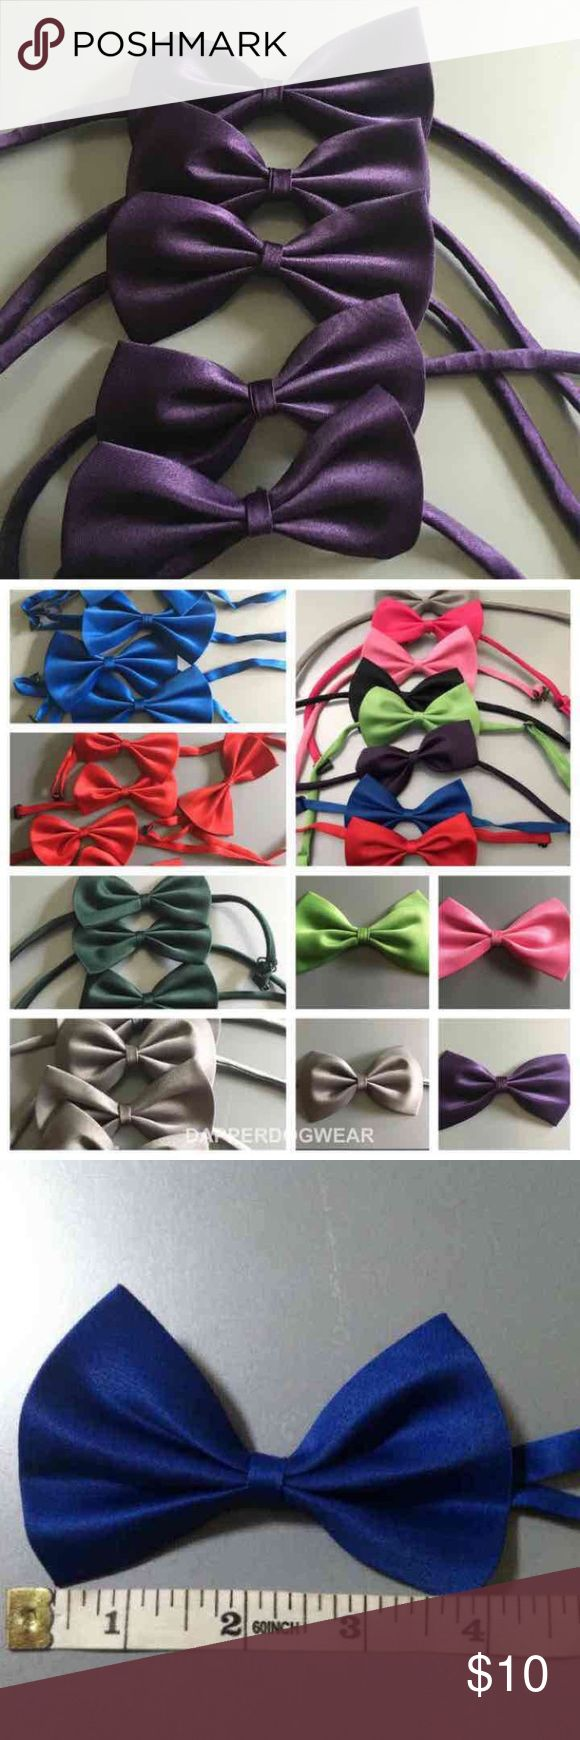 5 BABY TODDLER KIDS PETS BOW TIES Pick your colors :) SOLD OUT OF SILVER Cute little bow ties can be worn for any occasion. Formal/business casual, parties, raves, school, costumes, photo shoots or just spice up your outfit for every holiday! New Years, valentines, st. Patrick, thanks giving , Halloween, Christmas.  Silk/polyester Adjustable. Shortest length is about 7inches. Longest length about 14inches. Item does not have tags. Sealed in plastic, never worn, brand new. Please keep in mind…